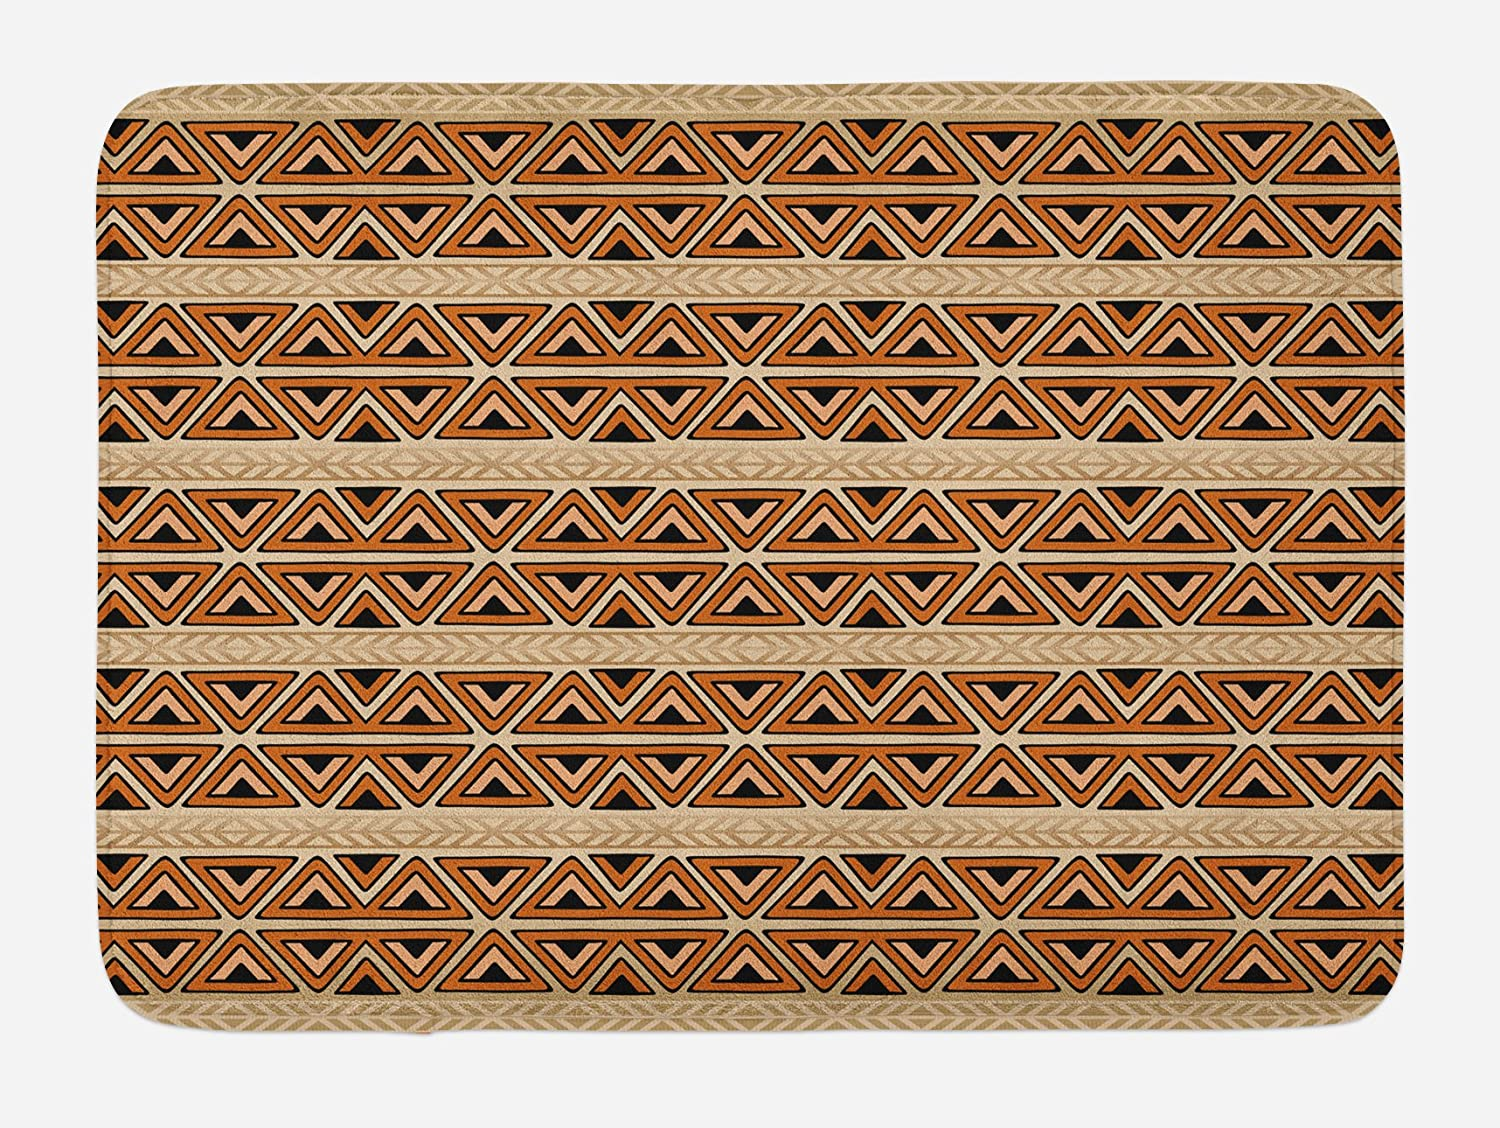 Ambesonne African Bath Mat, Abstract Art Style Inspired Geometric Pattern with Triangles Art, Plush Bathroom Decor Mat with Non Slip Backing, 29.5